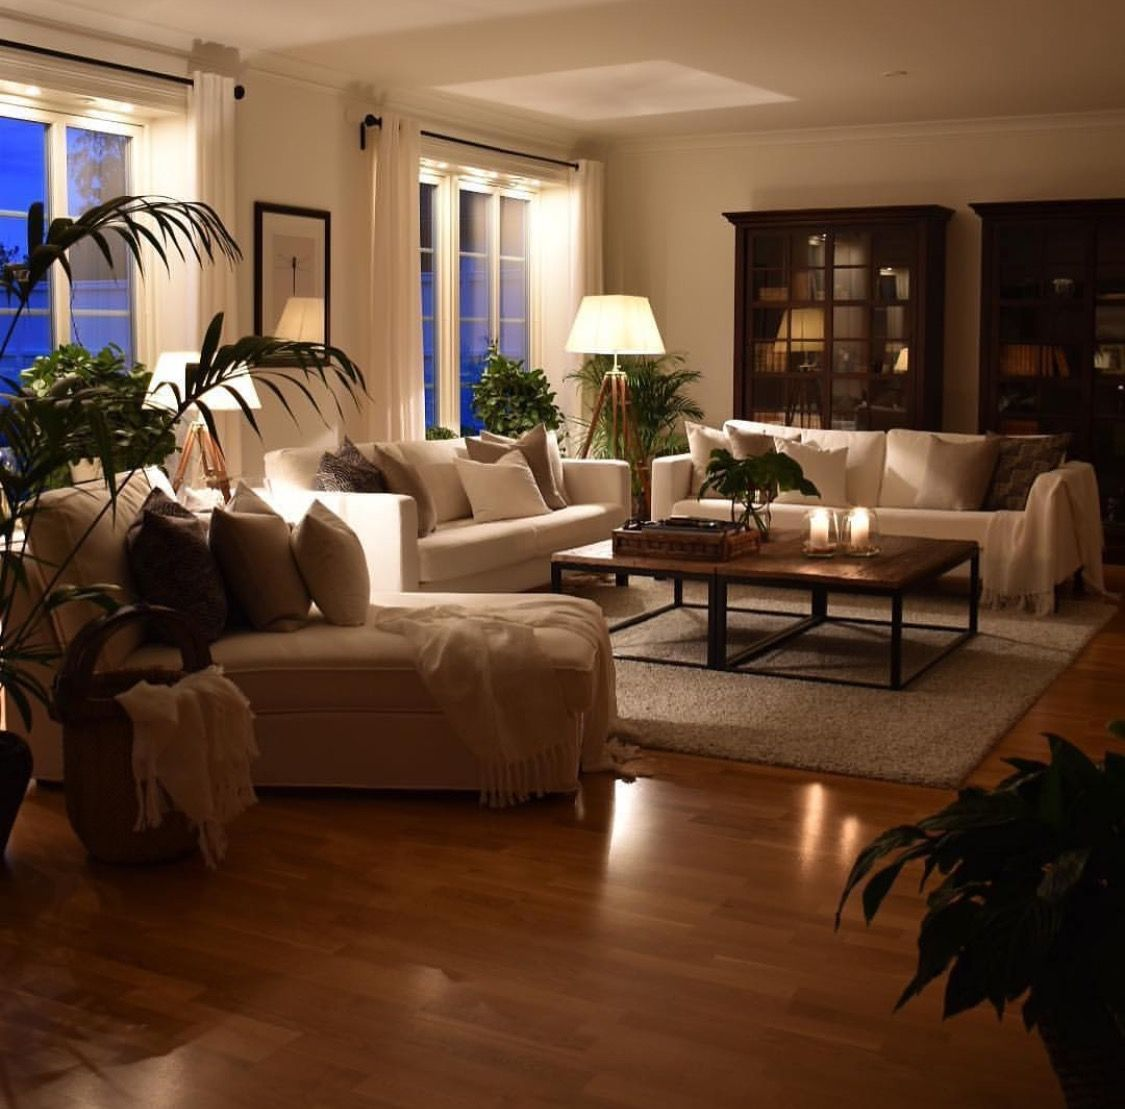 Create a cozy ambiance in the home with lighting warm blankets soft fabrics and lots of plants